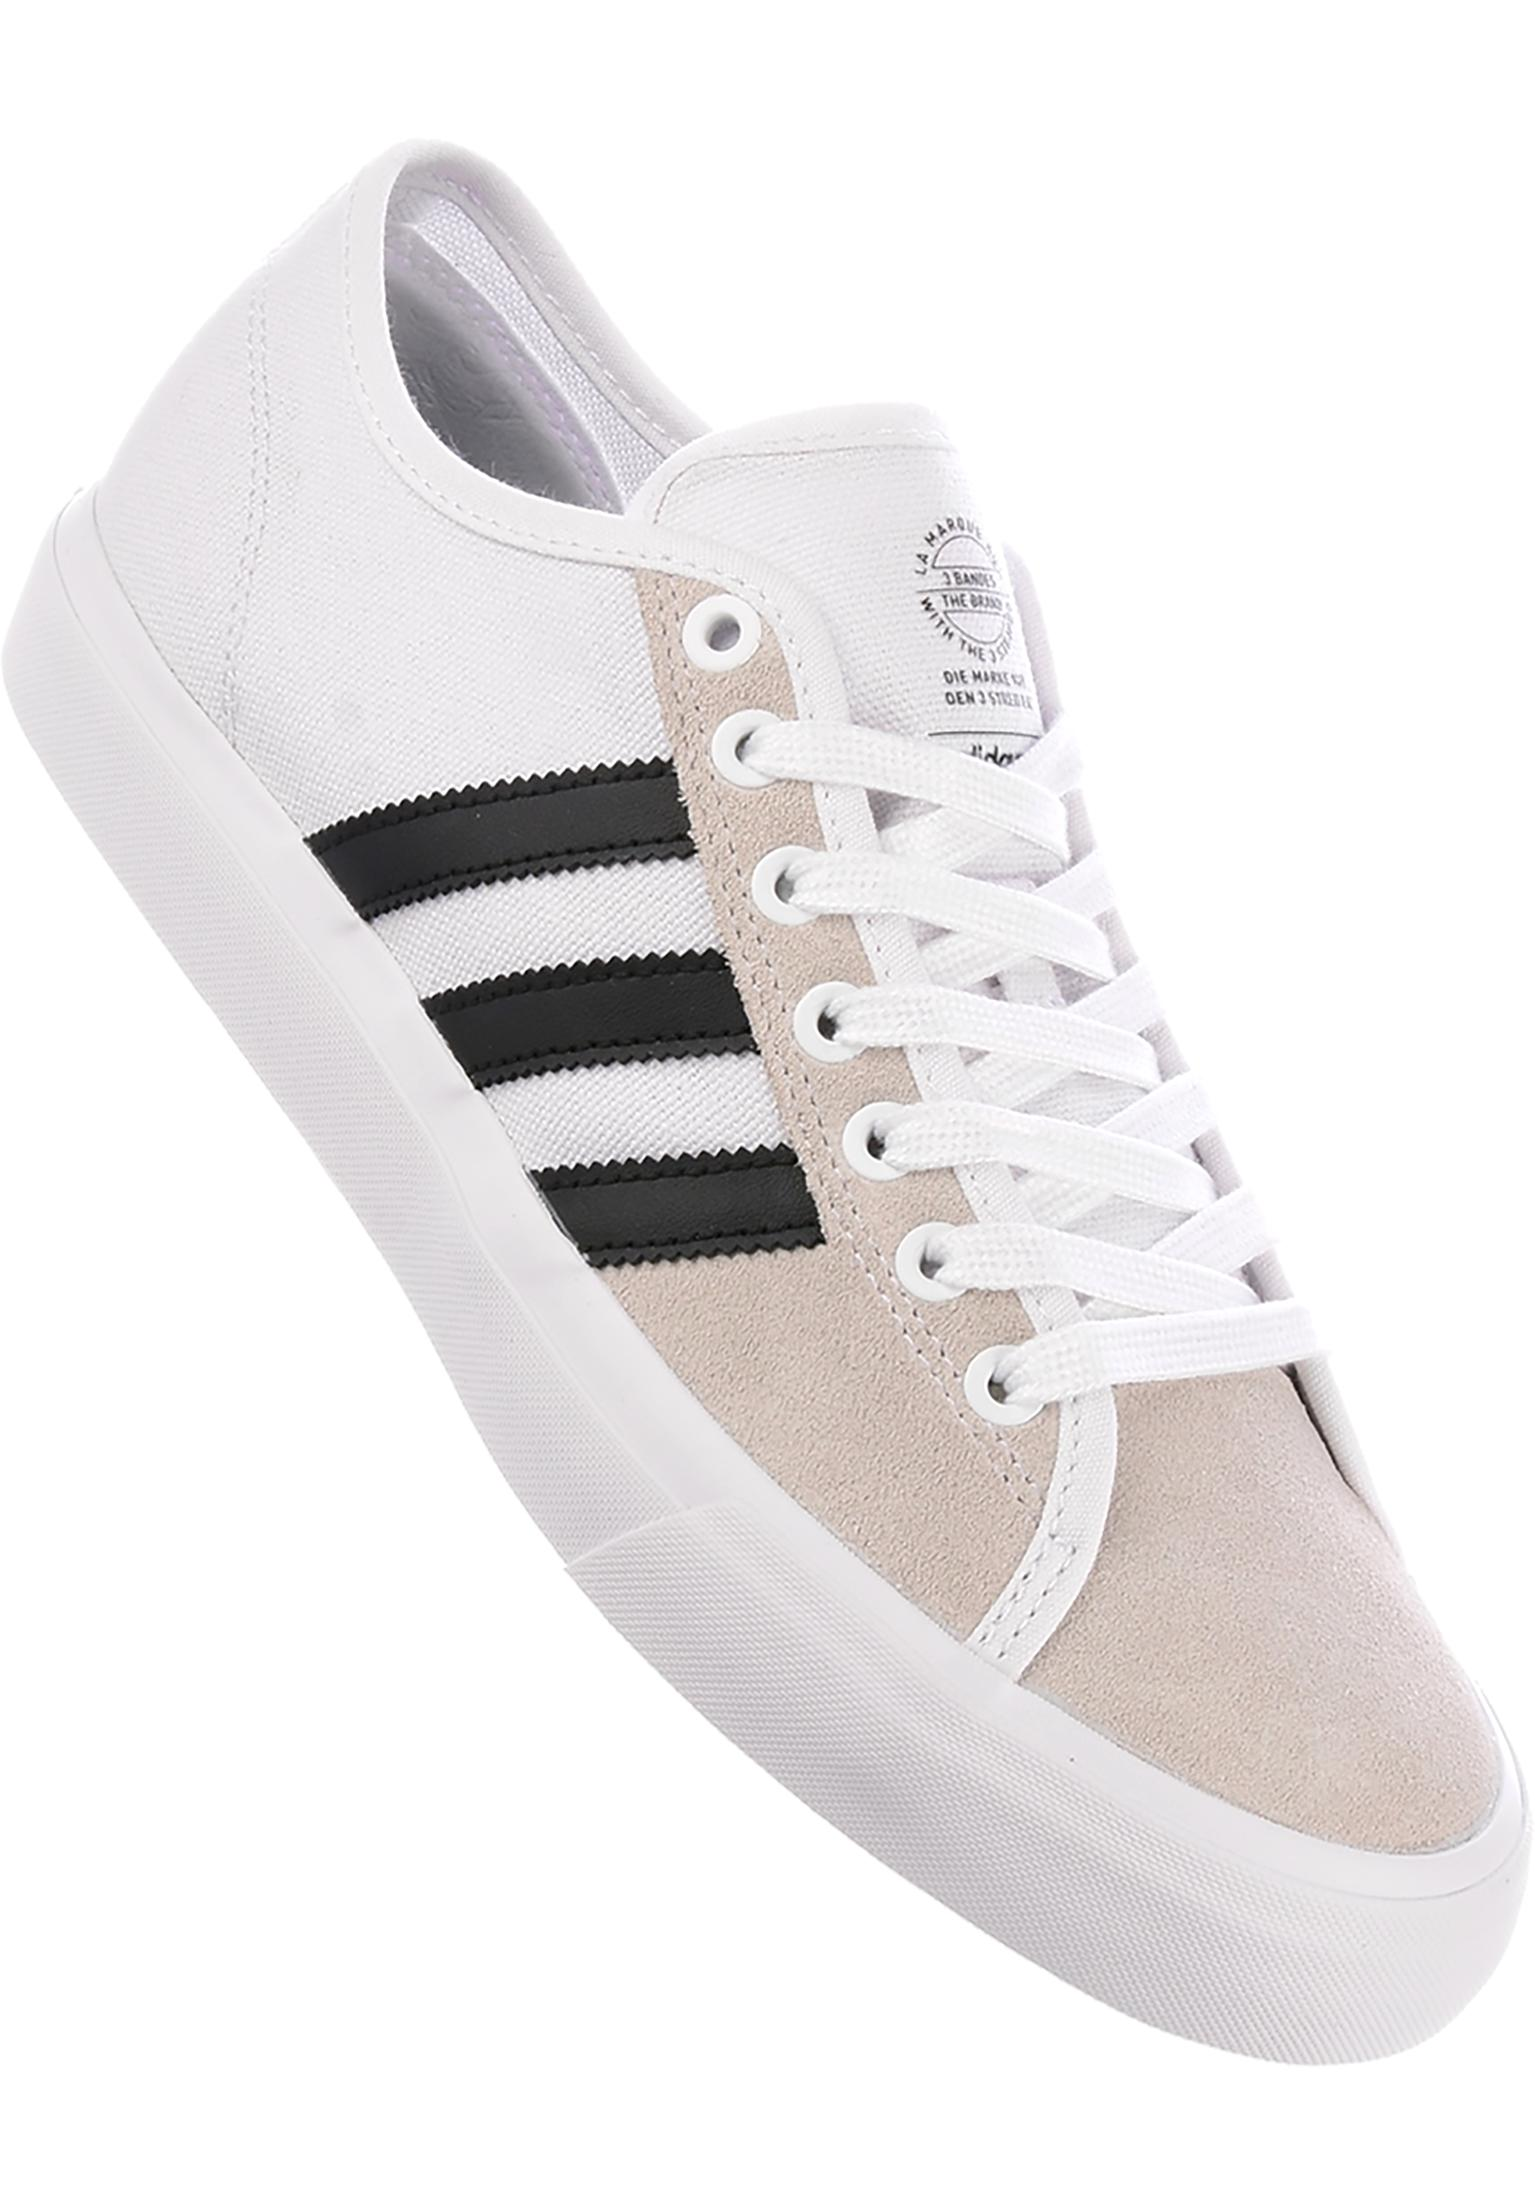 Matchcourt RX adidas-skateboarding All Shoes in white-black-white for Men  8c43ca5d436c